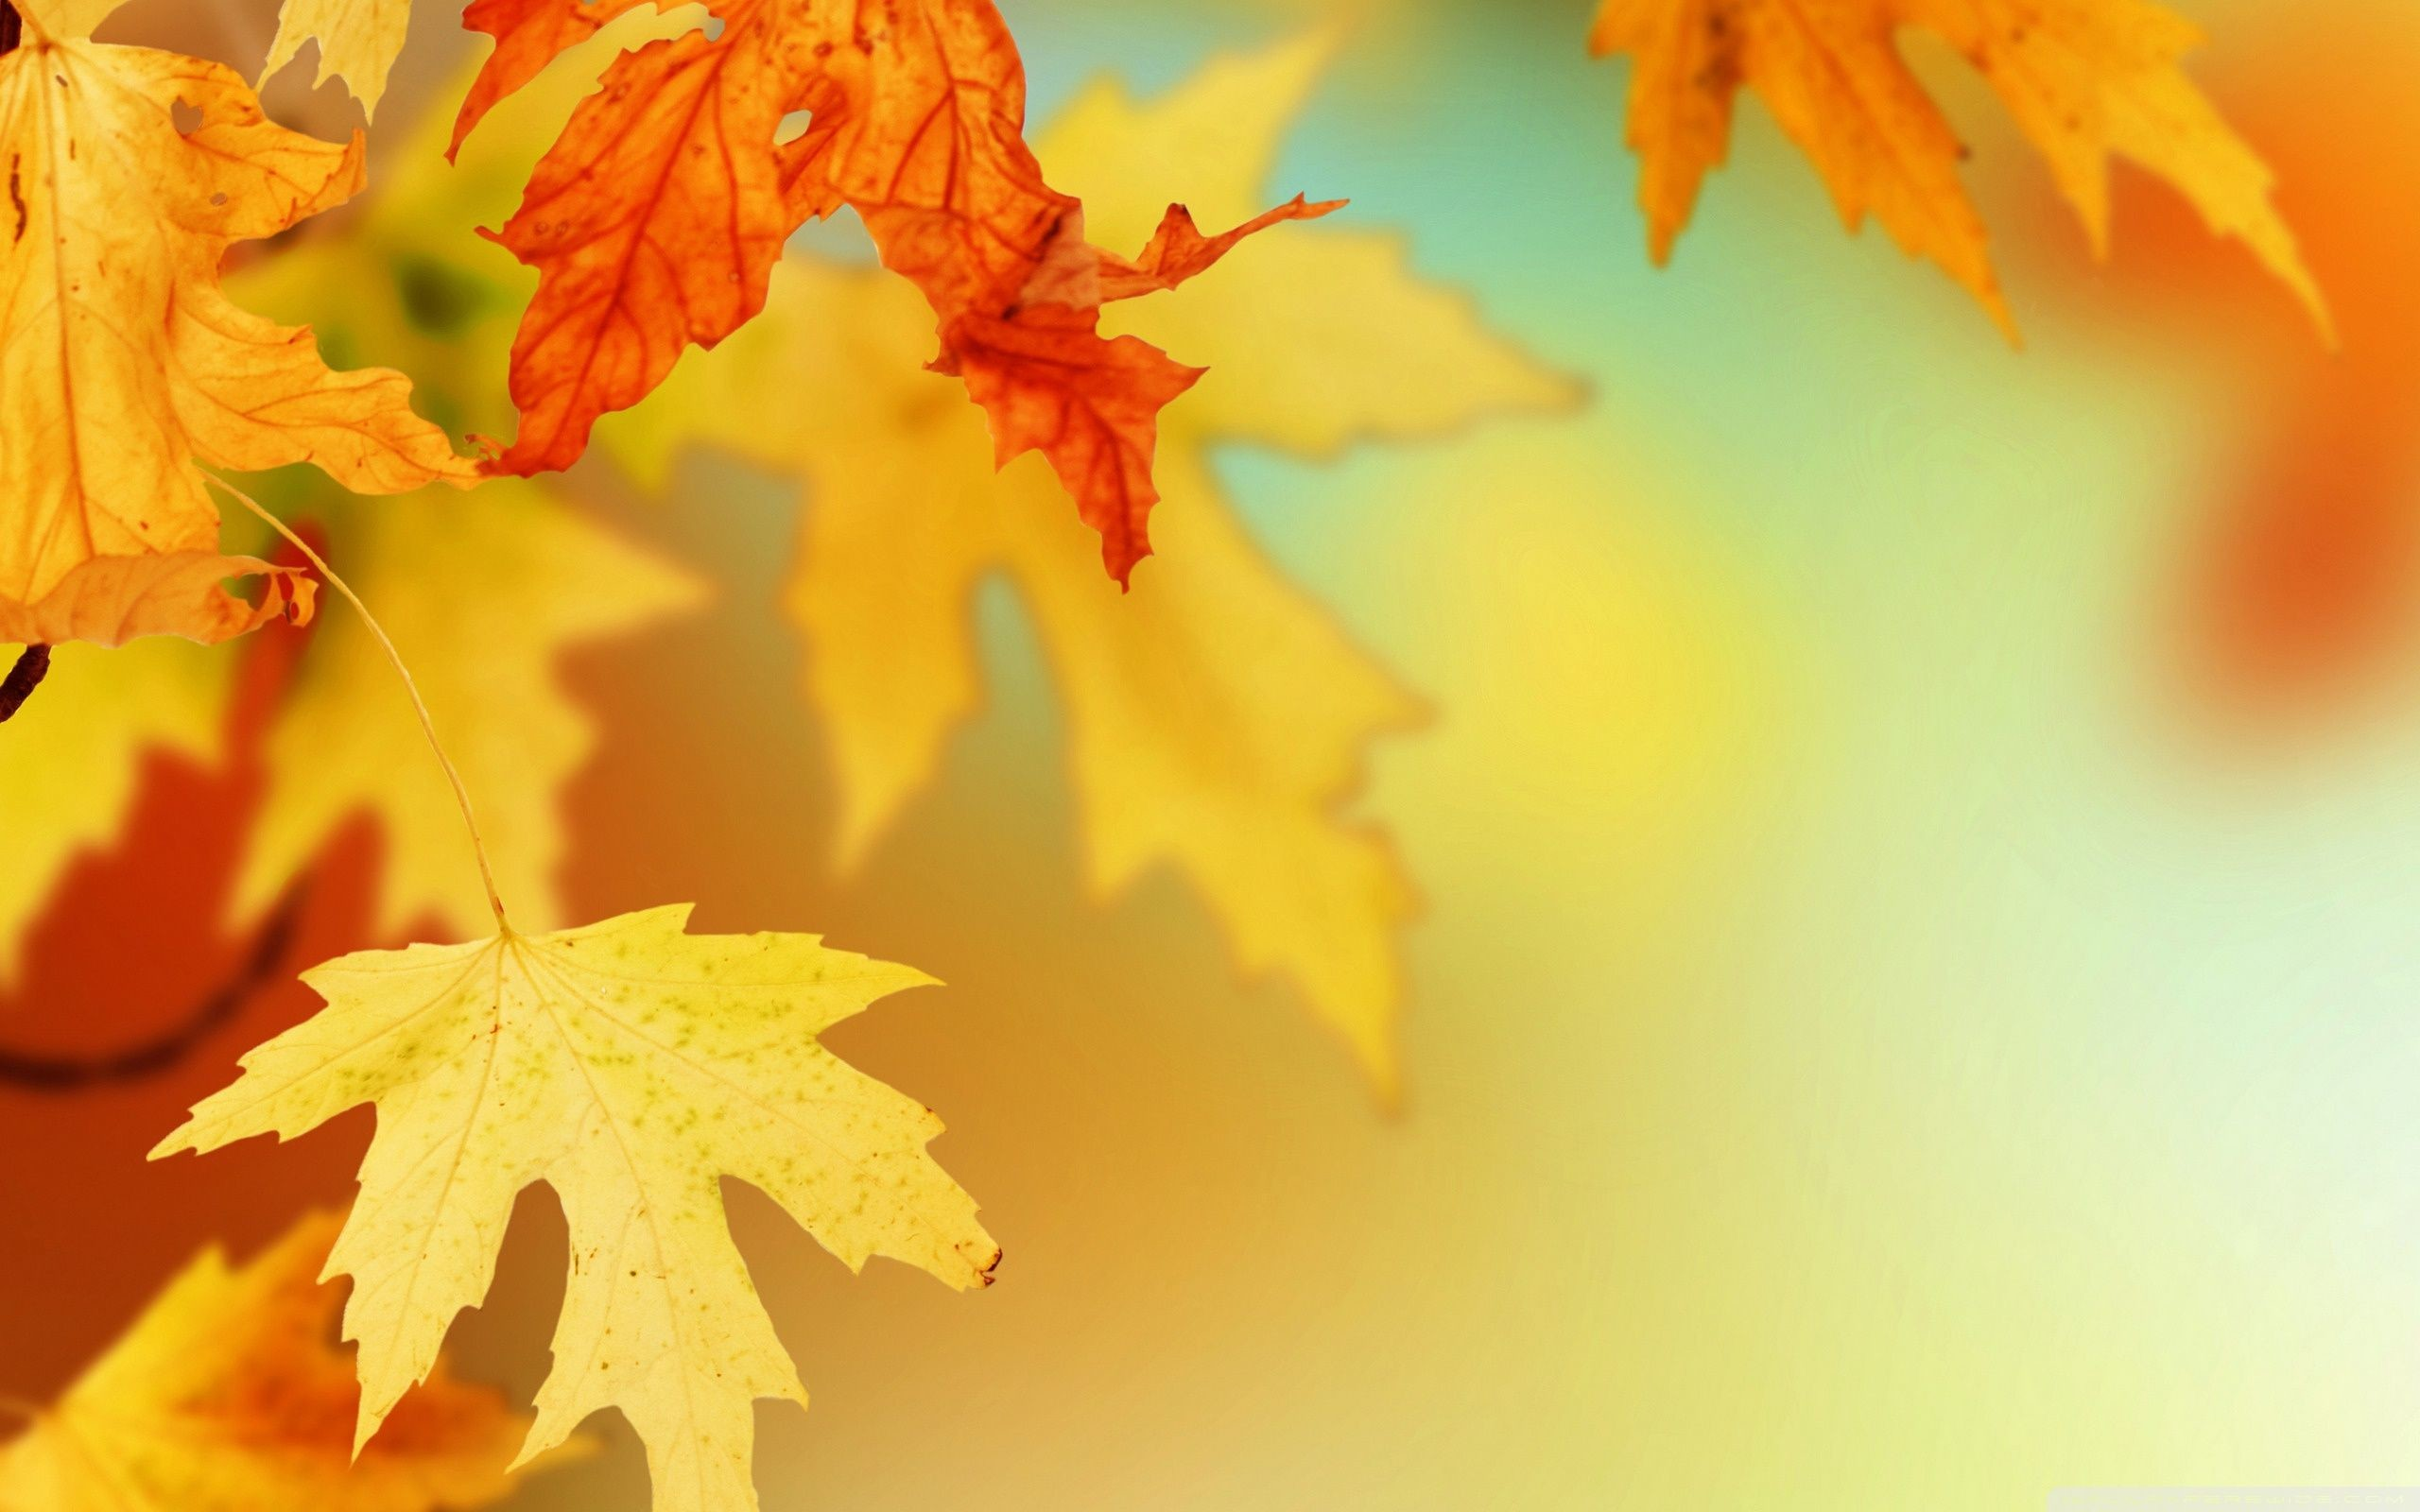 Pin by Ishita Sidhu on Quotes Nature wallpaper Autumn leaves